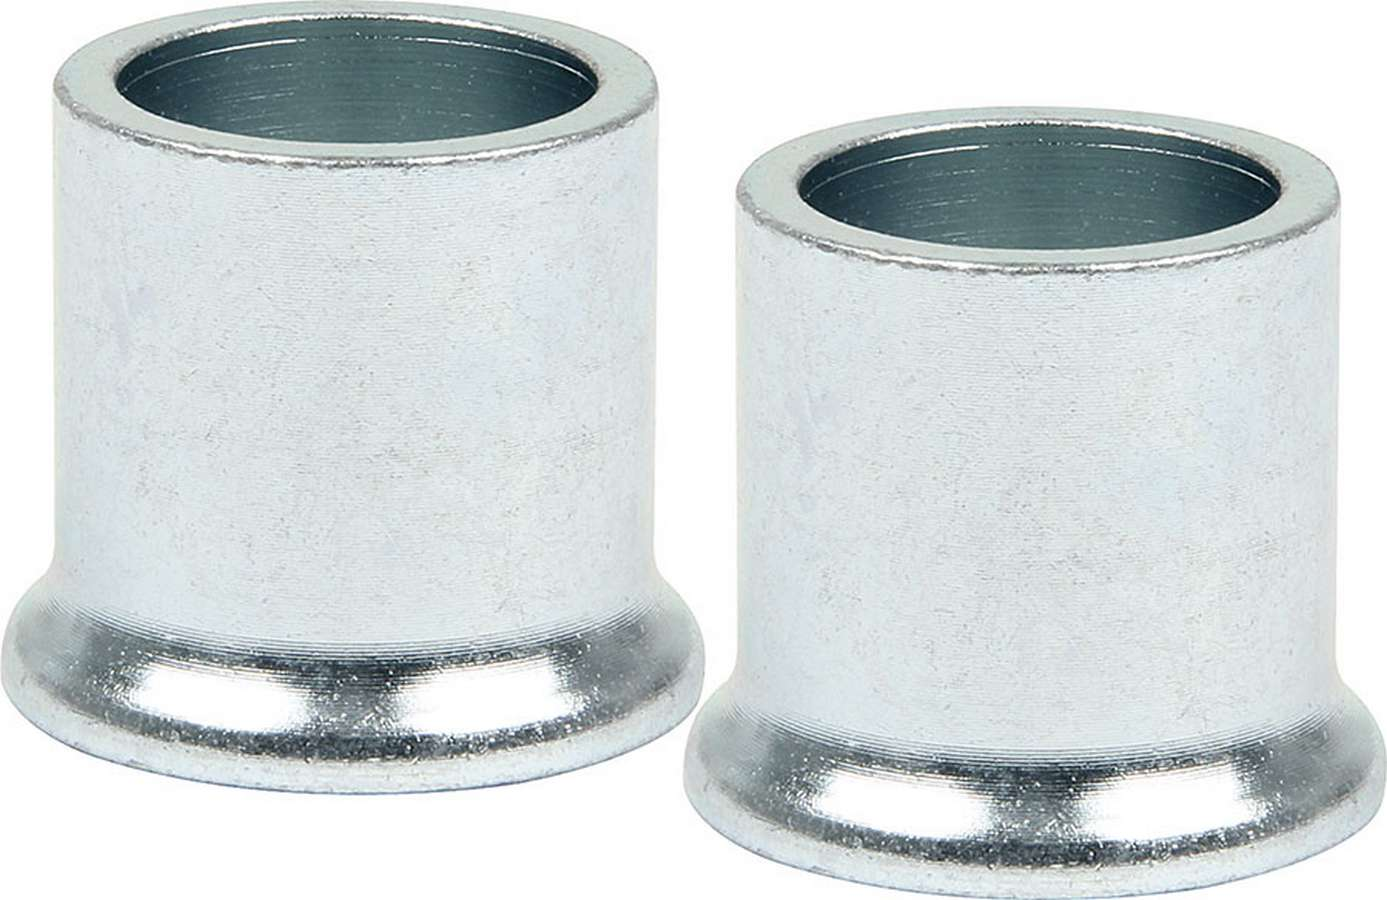 Allstar Tapered Spacers, Steel 3/4 I.D., 1 Long